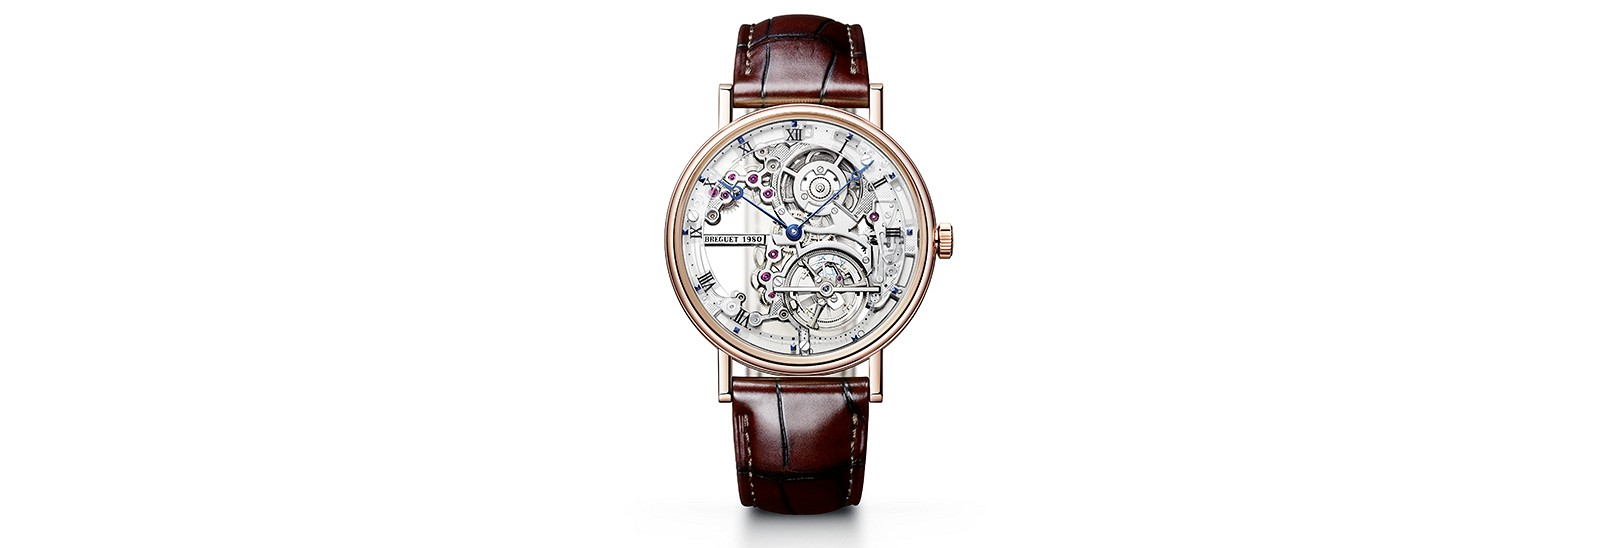 Breguet: the epitome of excellence